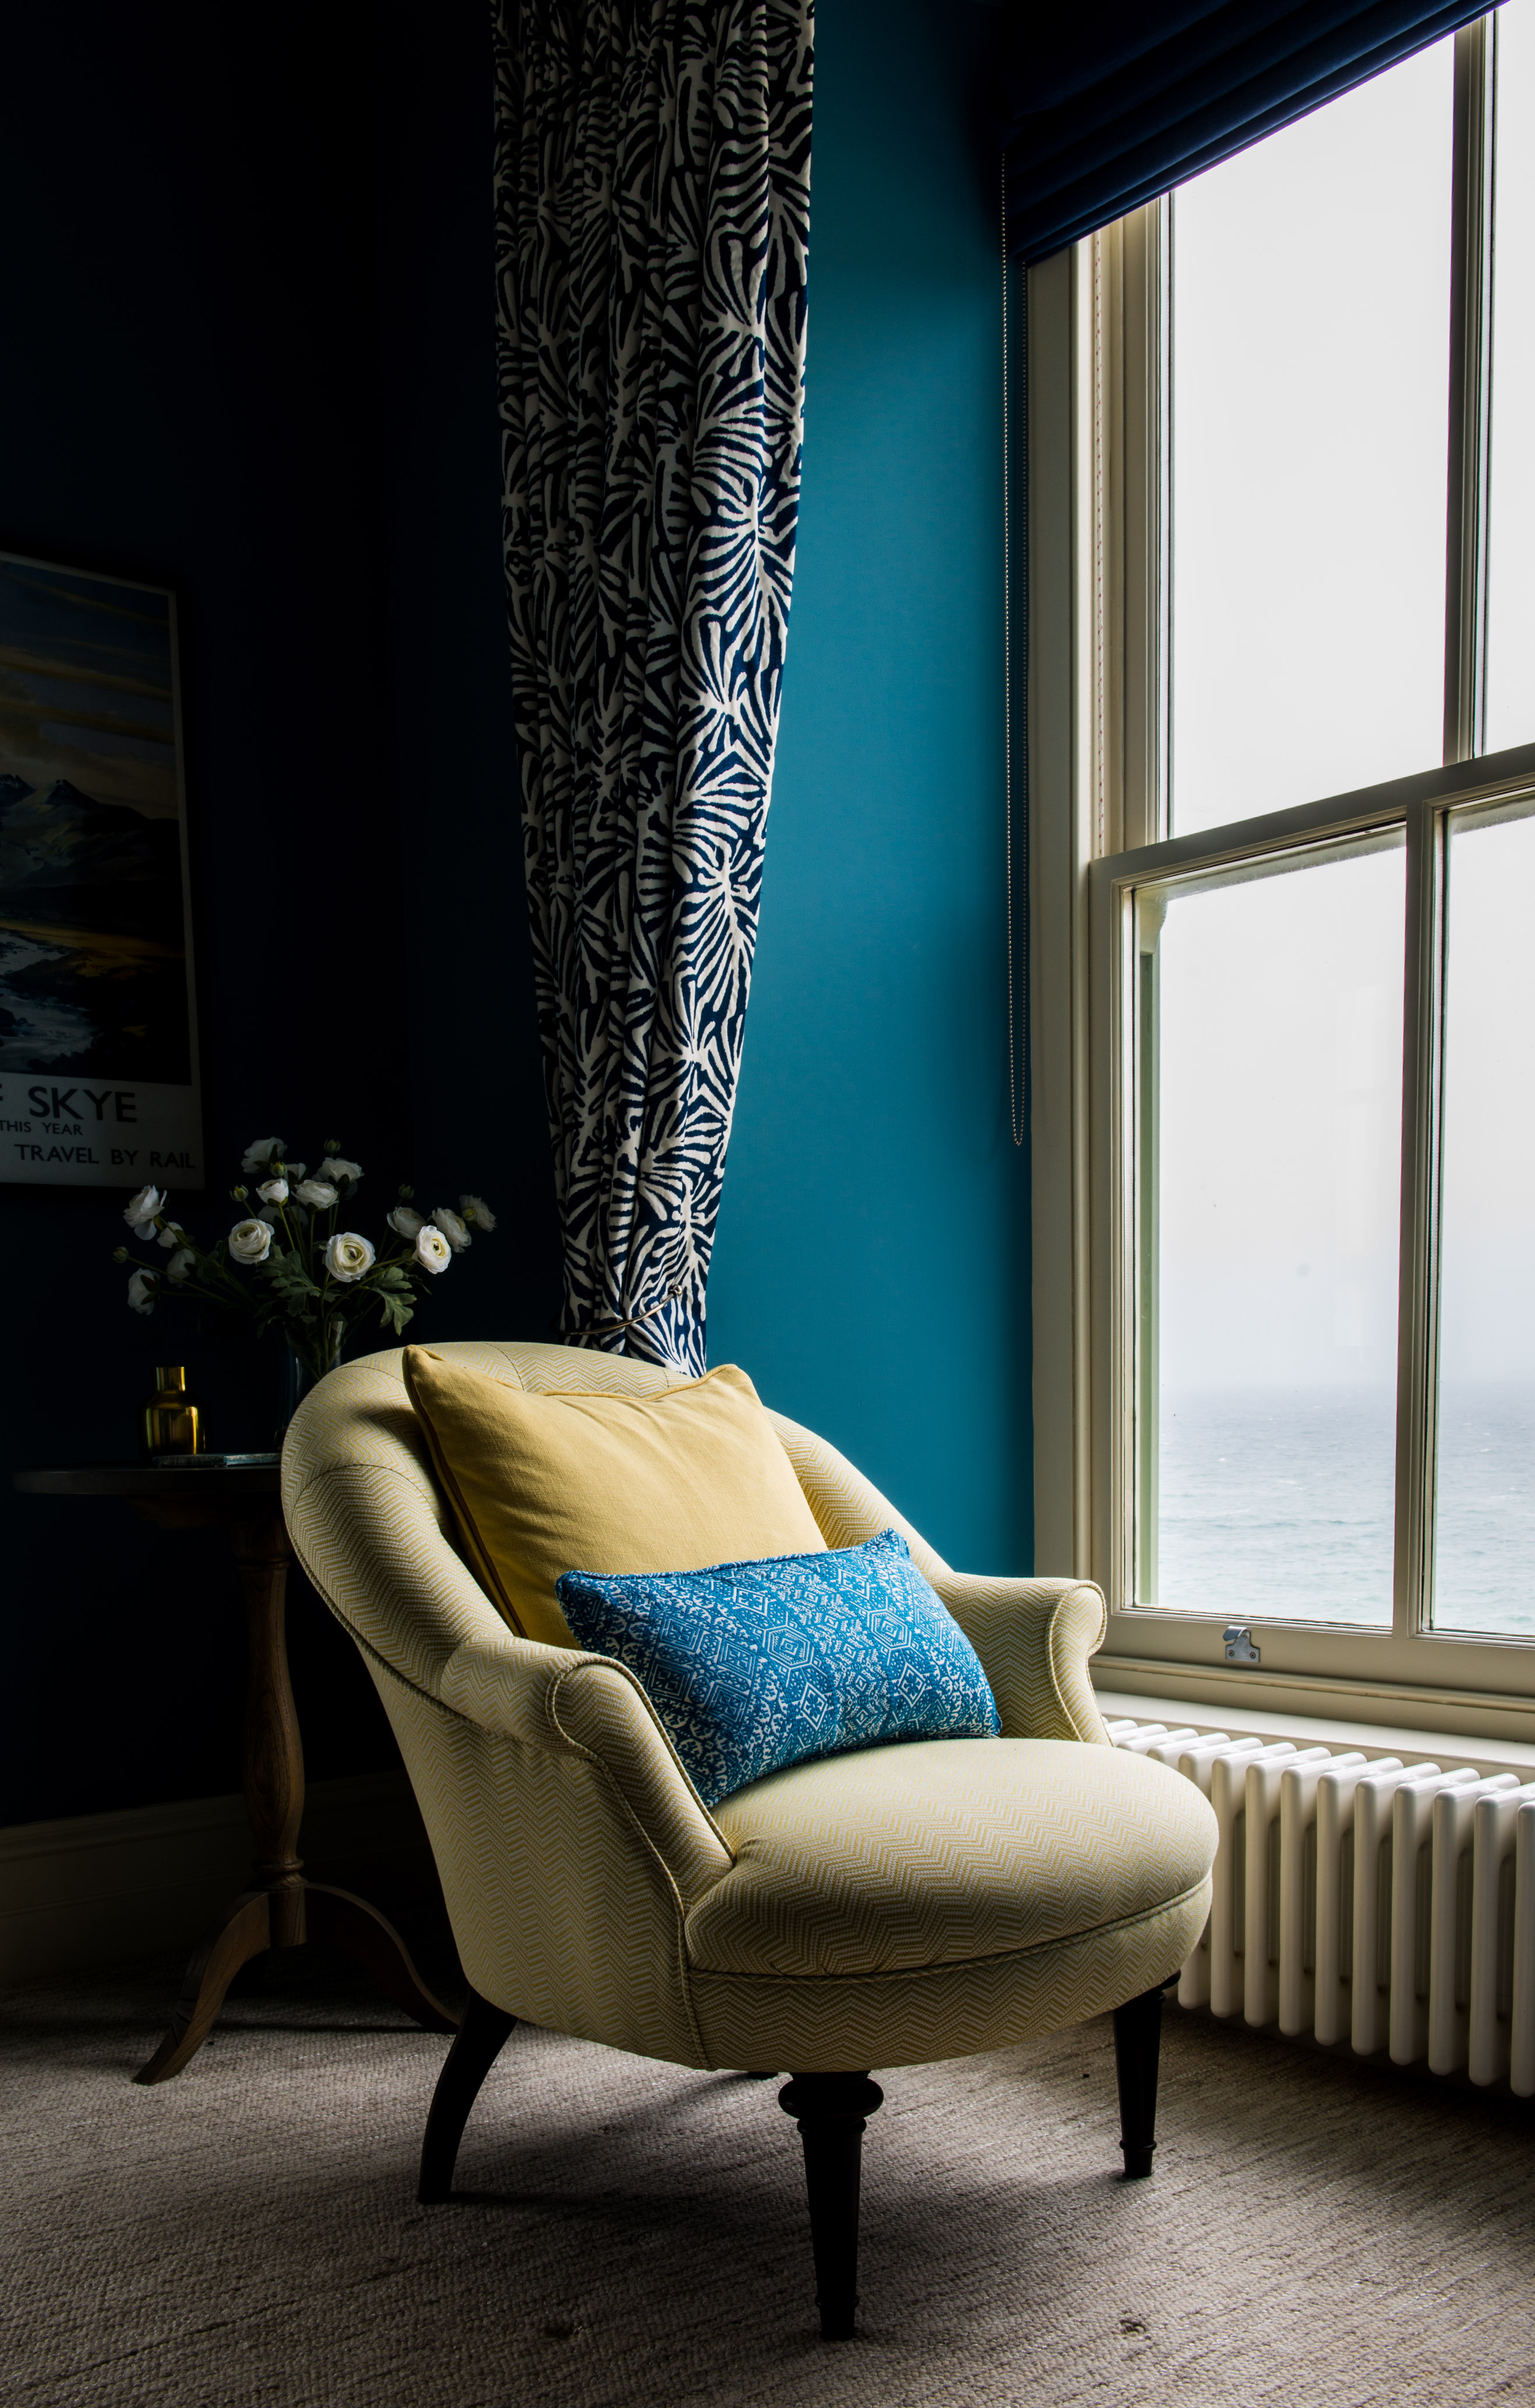 Chair with a view, Porthleven